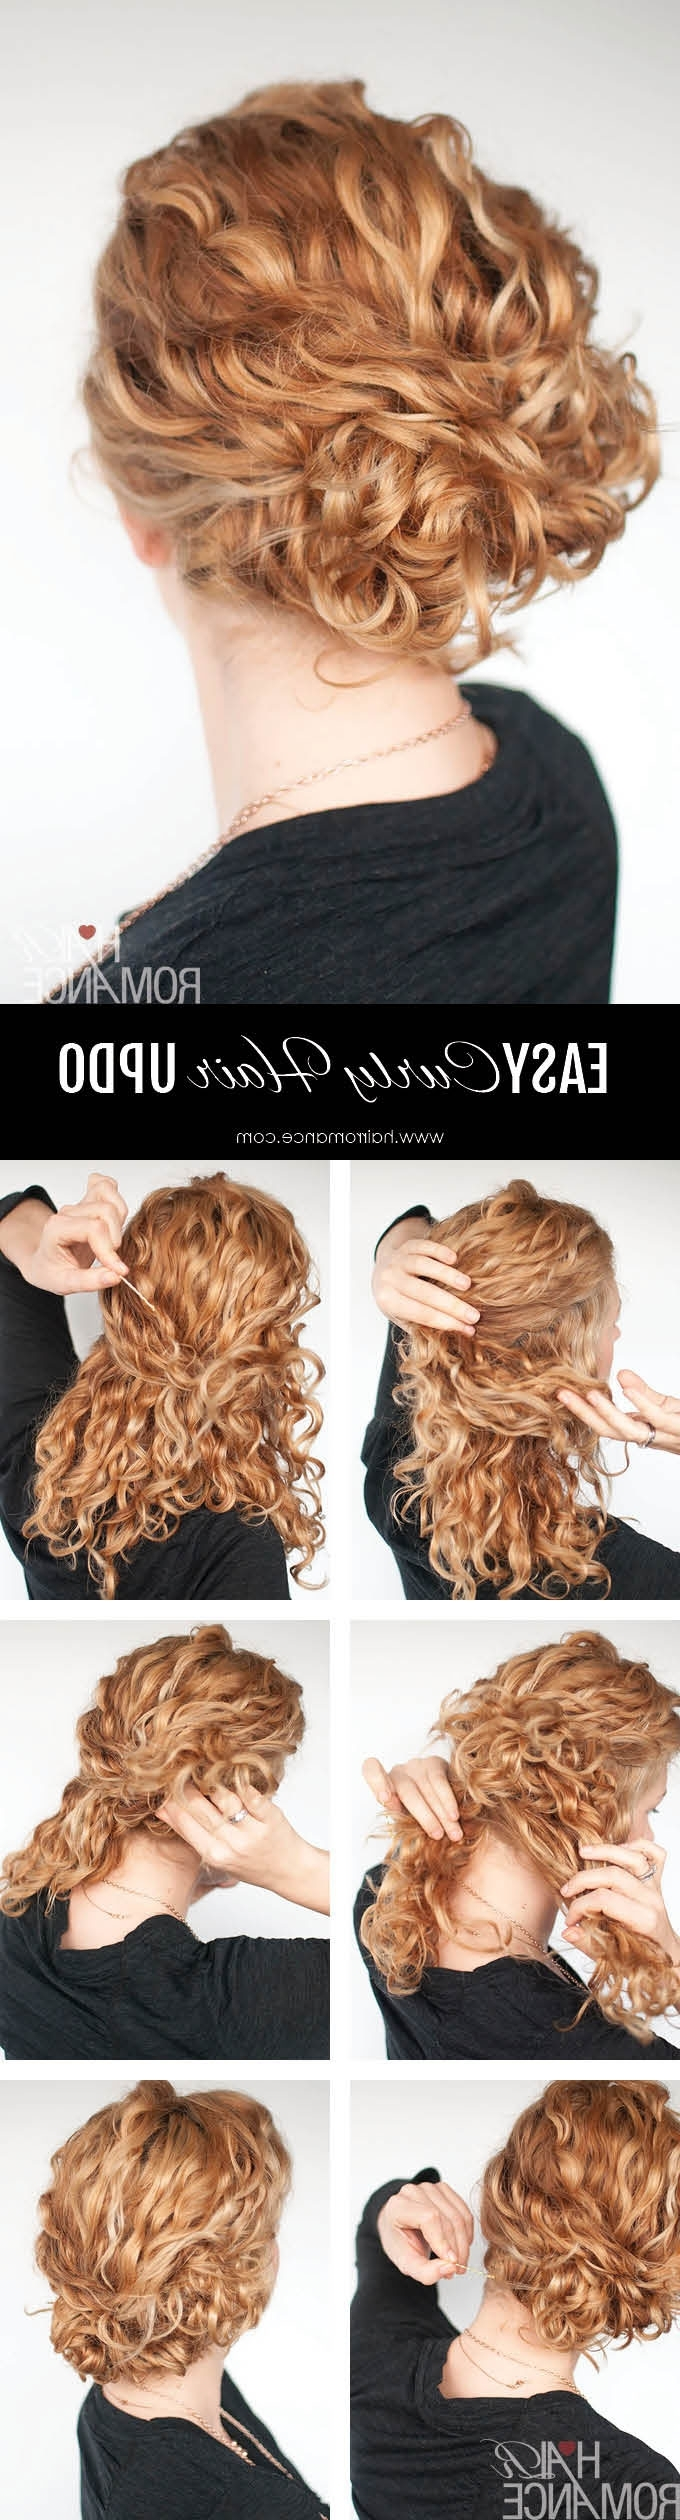 Super Easy Updo Hairstyle Tutorial For Curly Hair – Hair Romance In Easy Updos For Long Curly Hair (View 8 of 15)